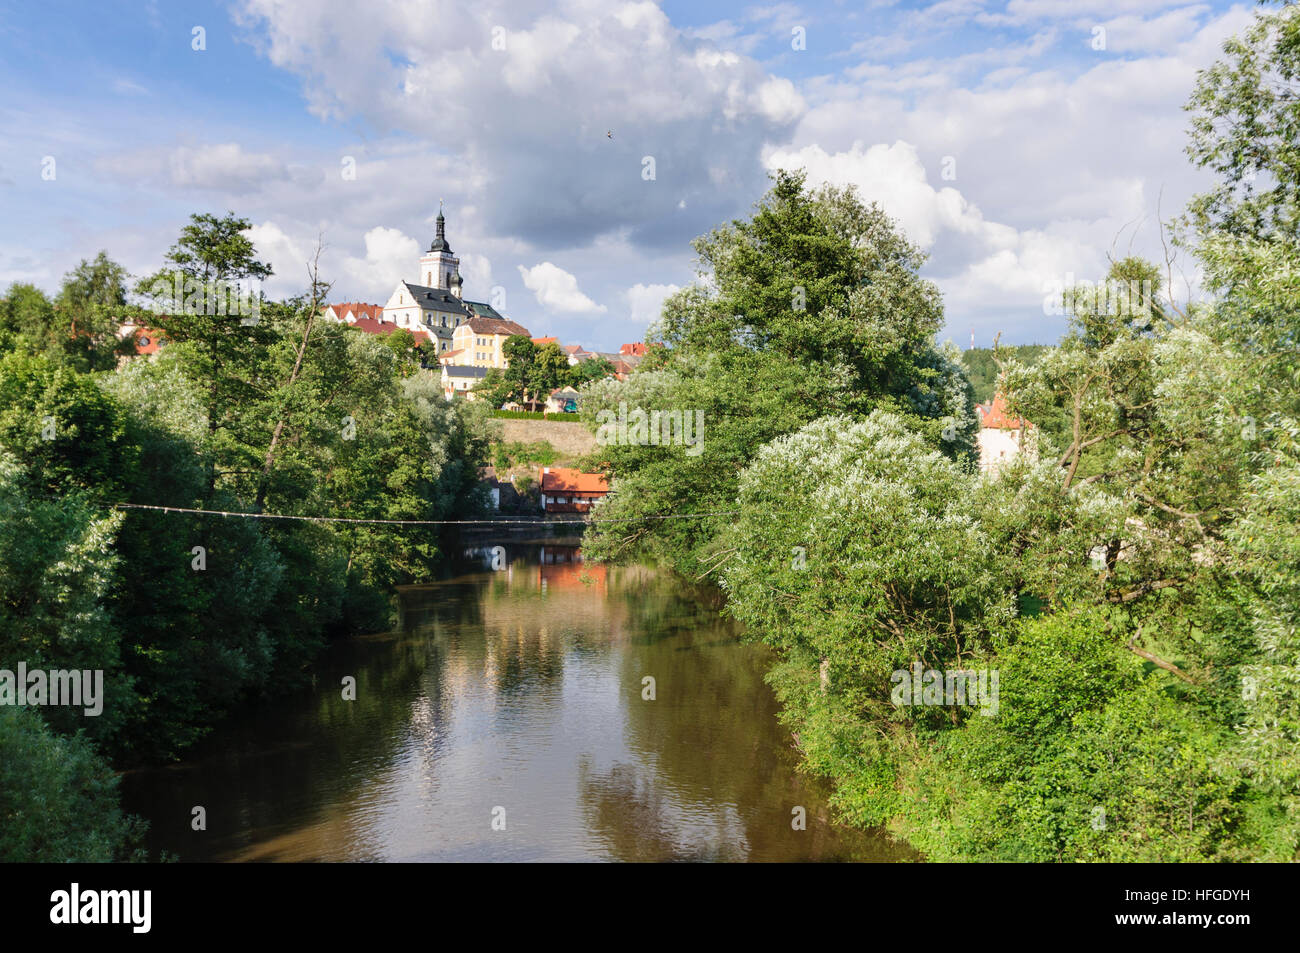 Kladruby u Stribra (Kladrau): City church over river Uhlavka, , Plzensky, Pilsner Region, Plzen Region, Czech - Stock Image